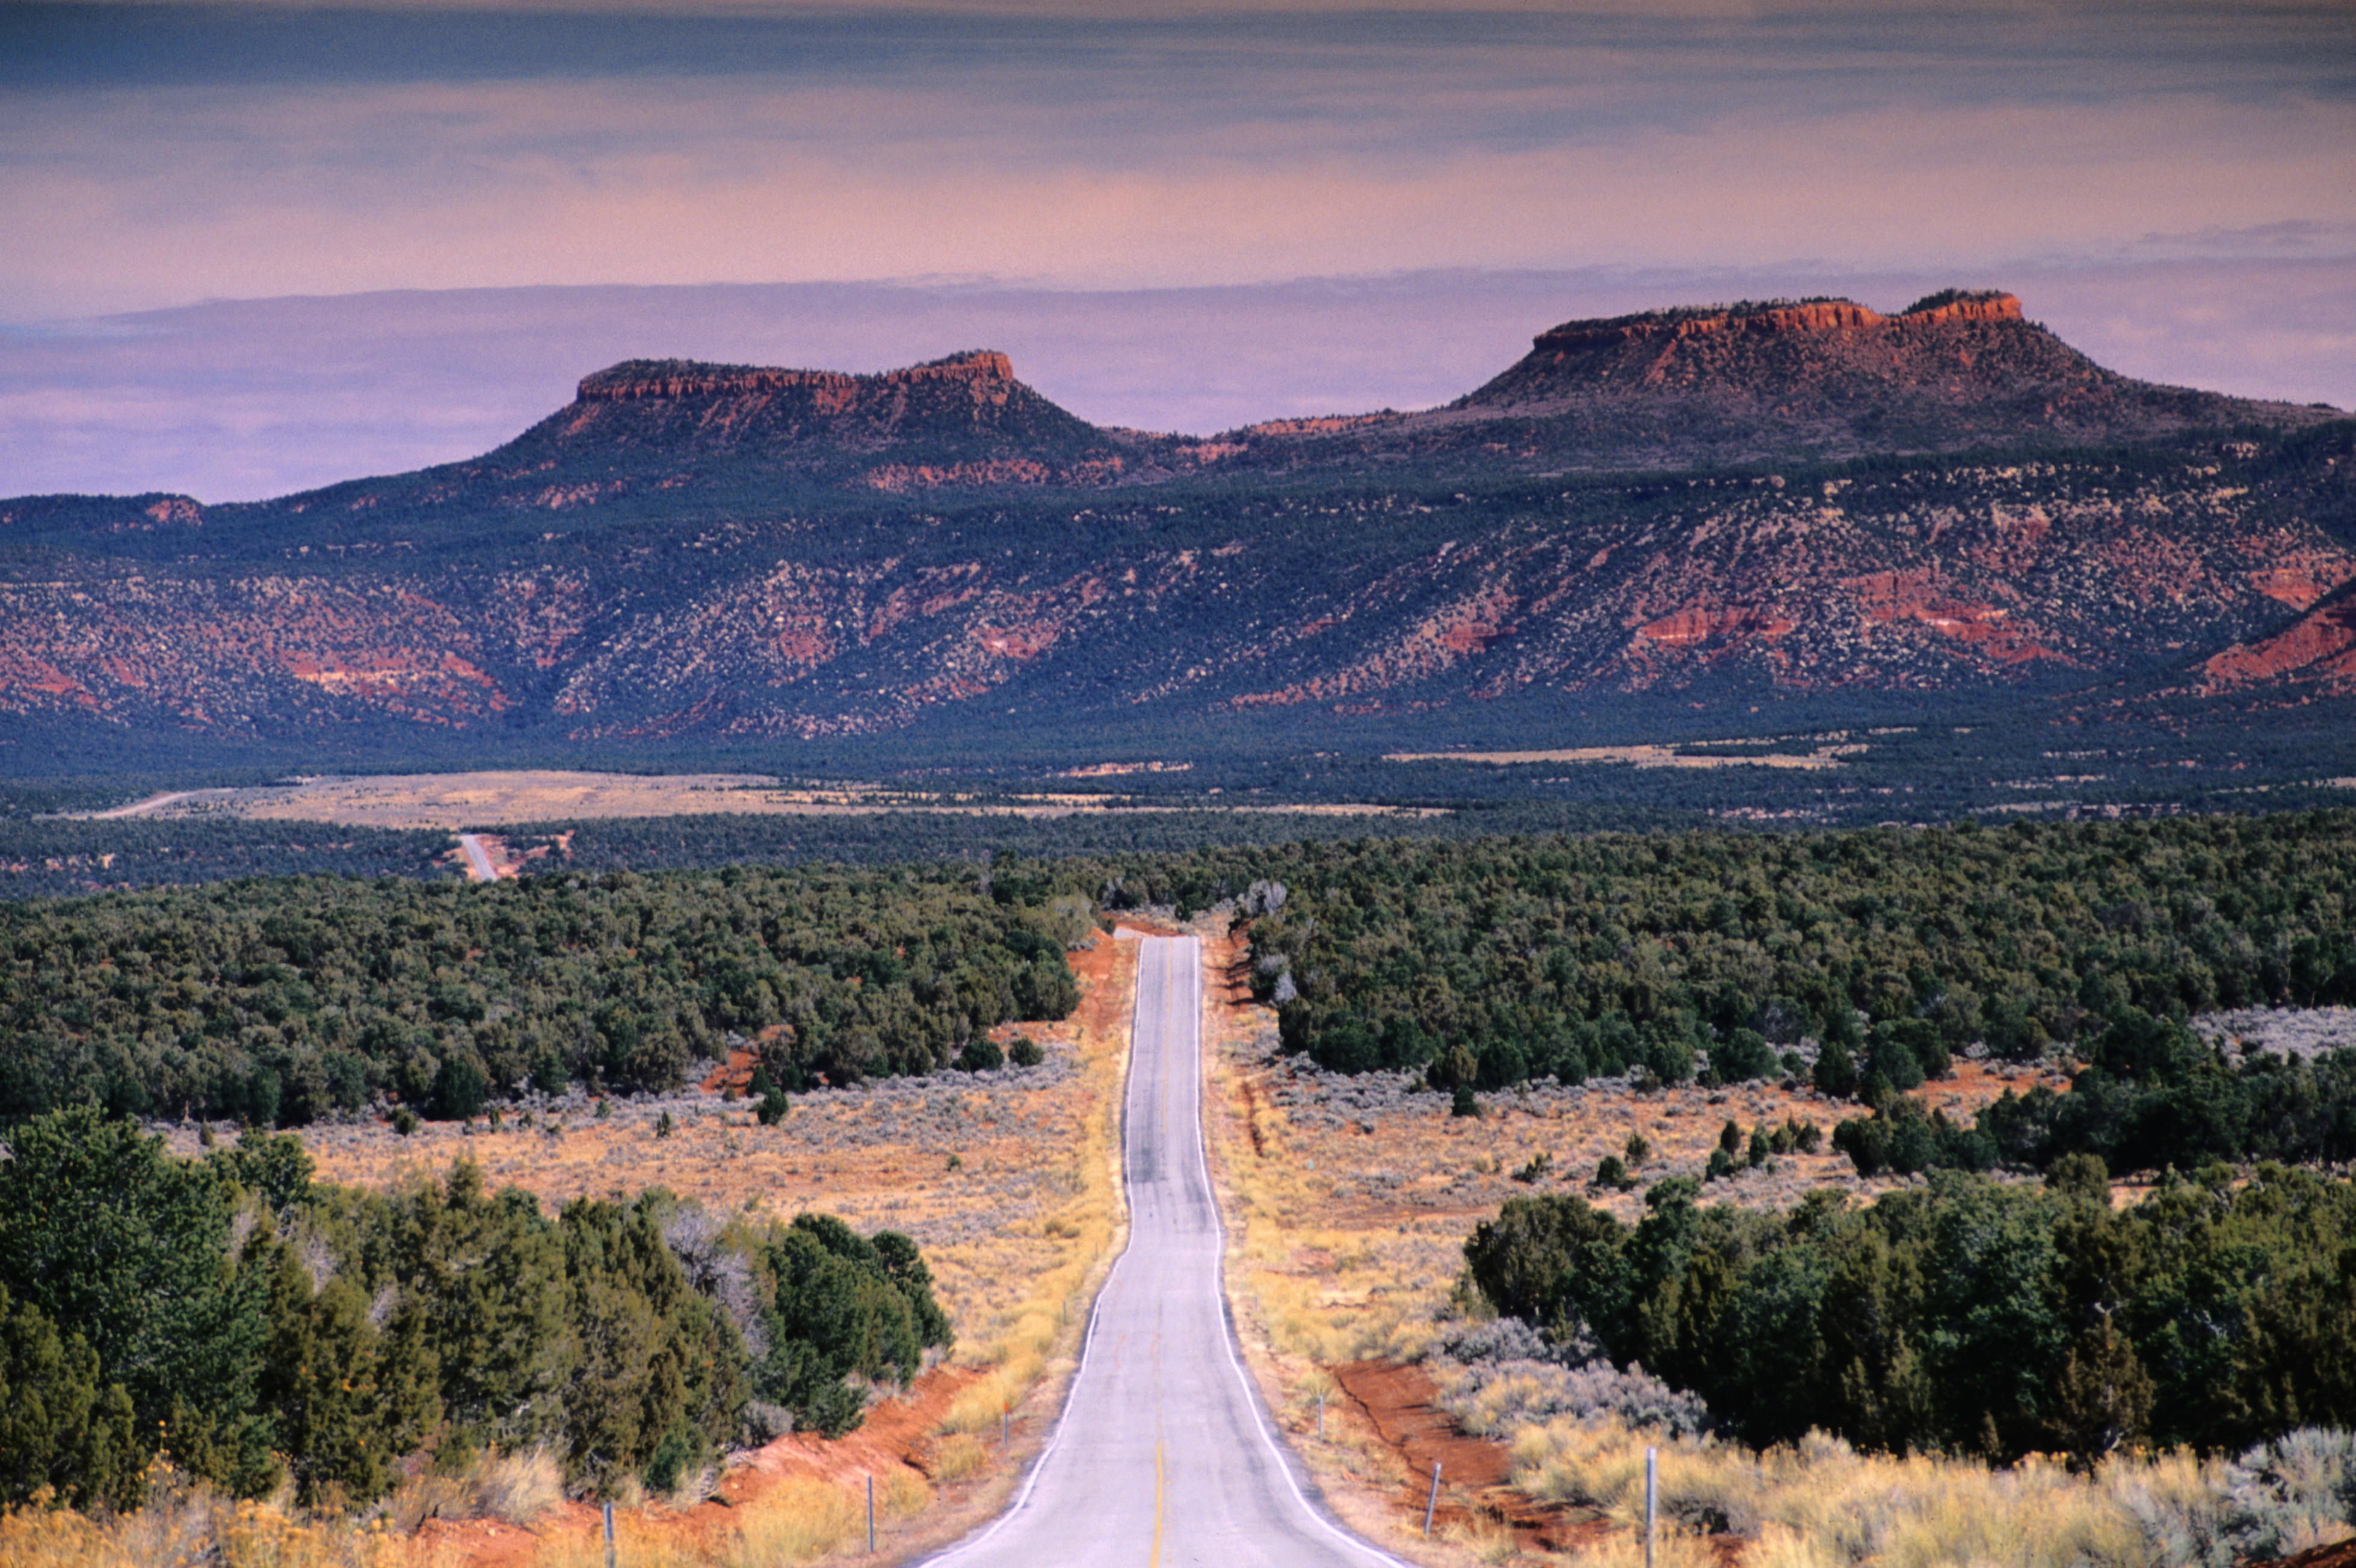 President Trump Shrinks Bears Ears, Sparking Protests and Lawsuits